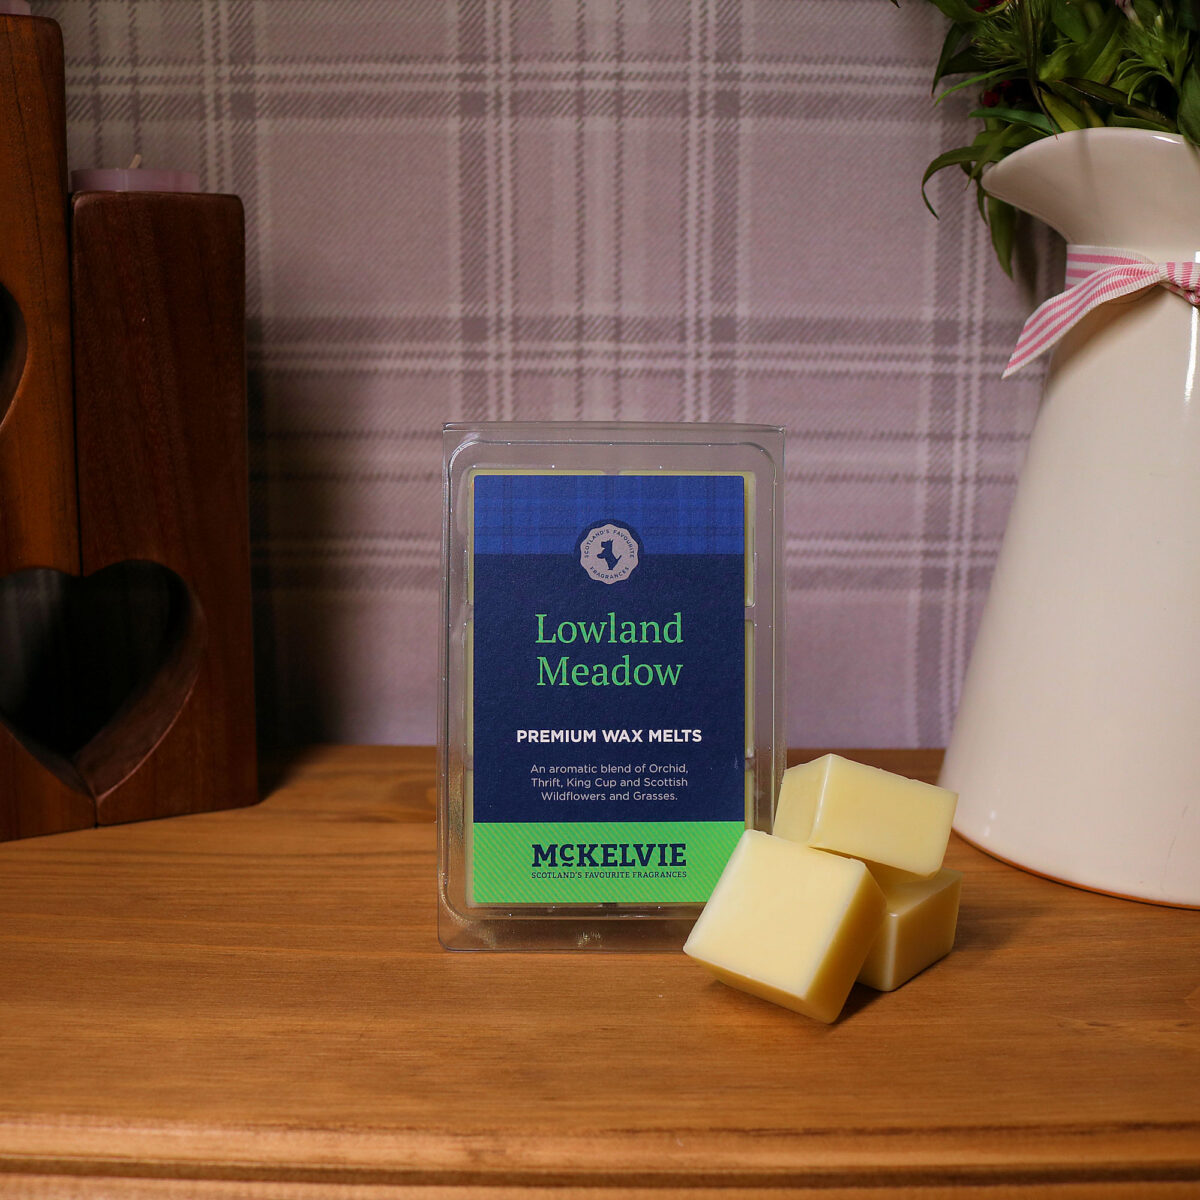 Lowland Meadow Wax Melts